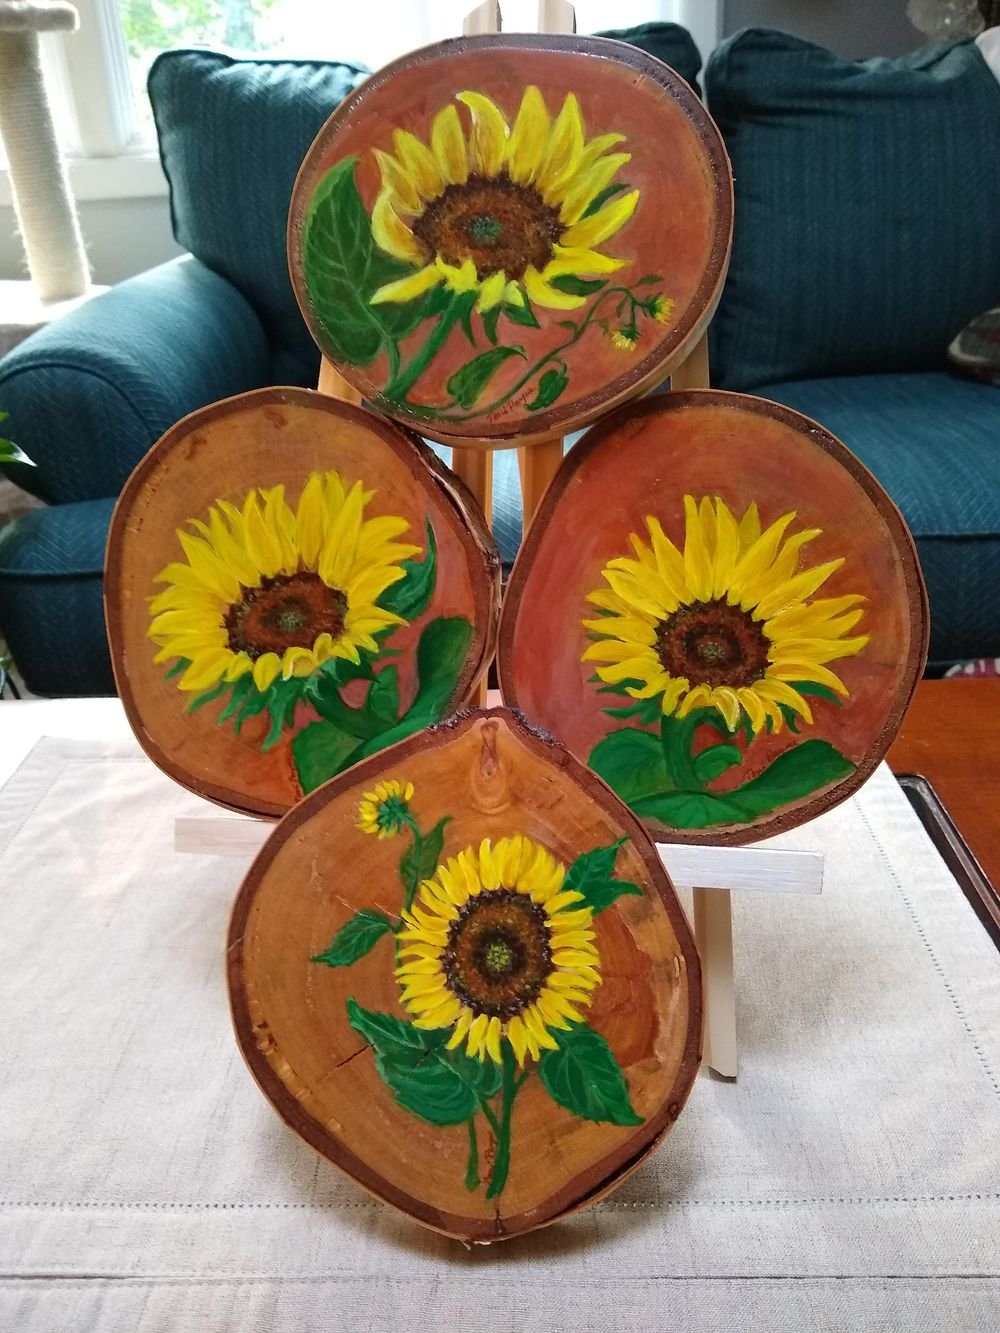 Sunflower Paintings - image 3 - student project